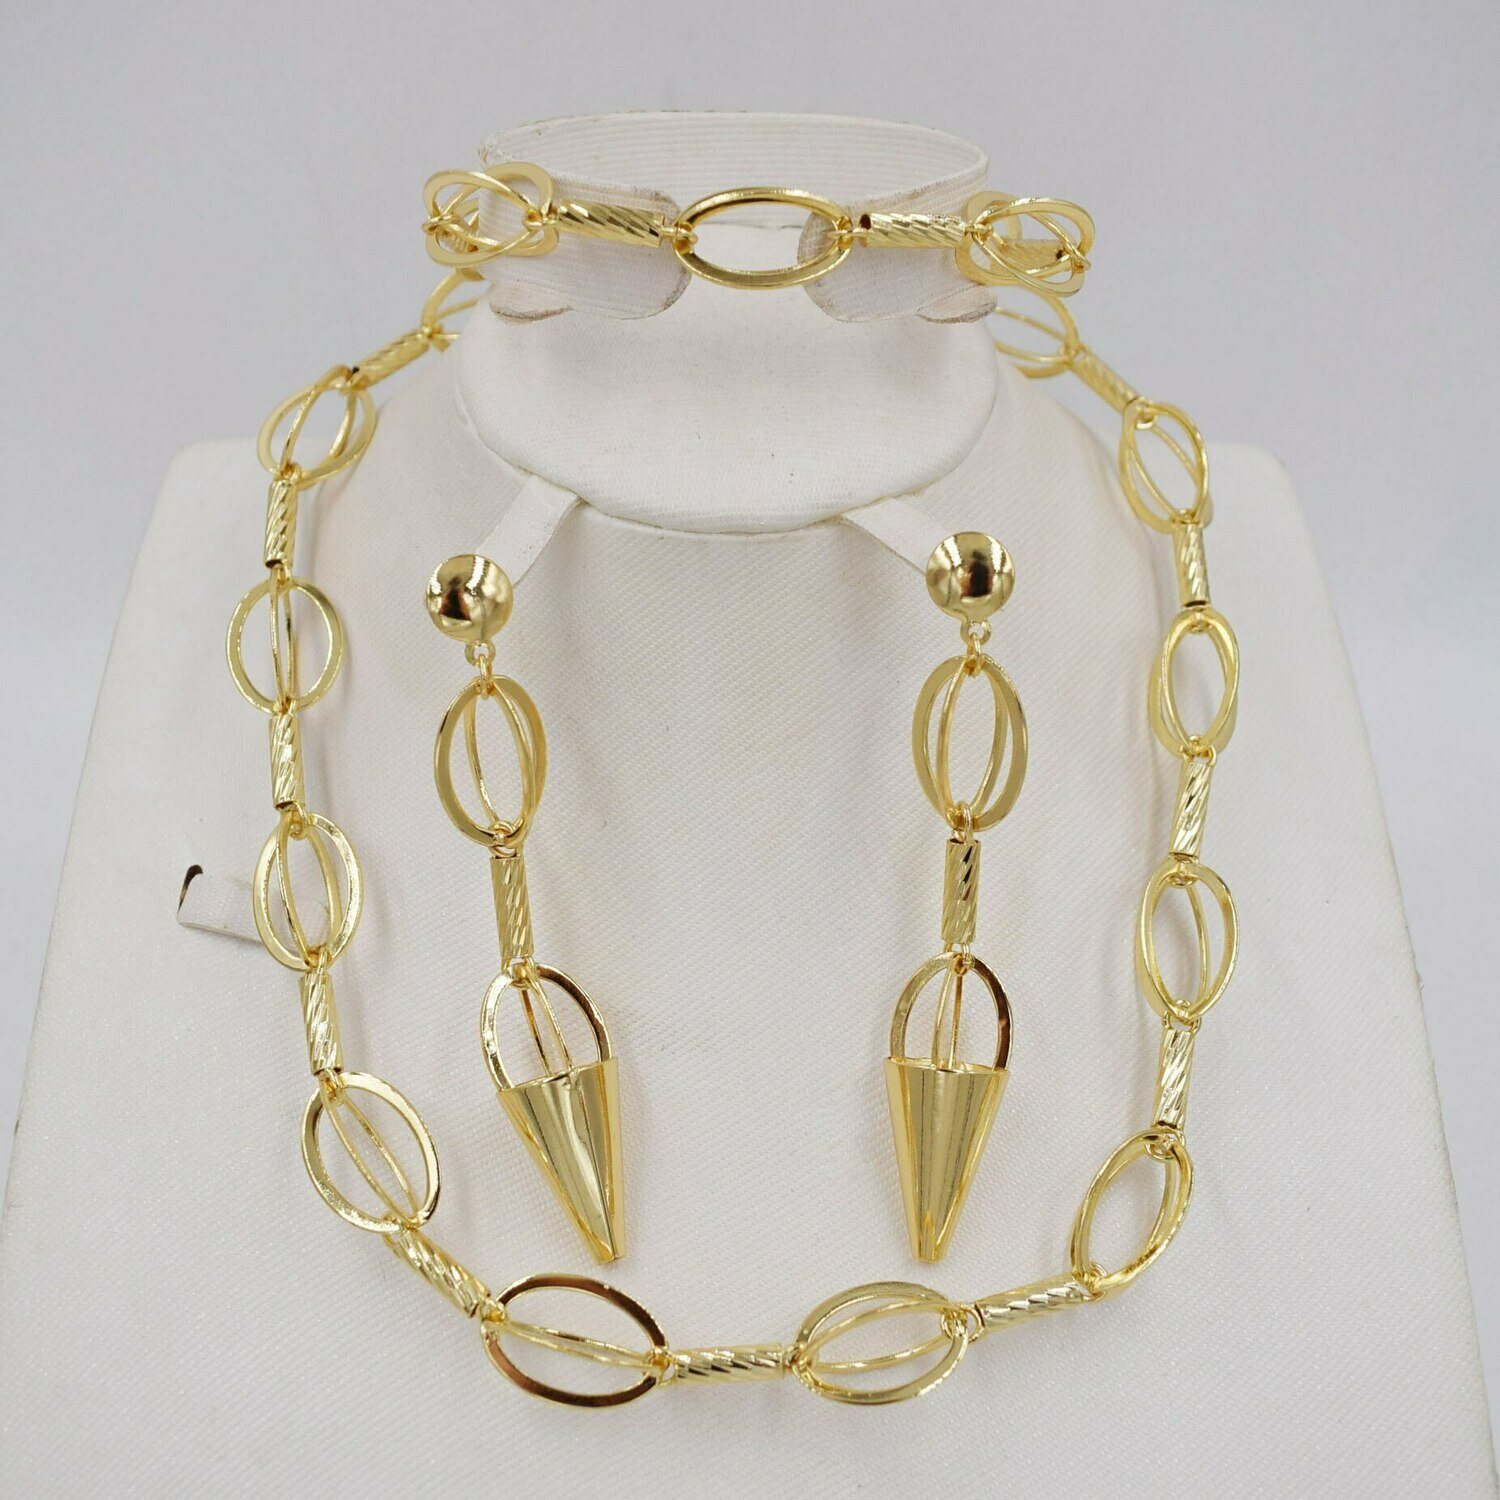 Jewelry-Set Earring Jewlery African Beads High-Quality Italy Gold-Color Women Fashion